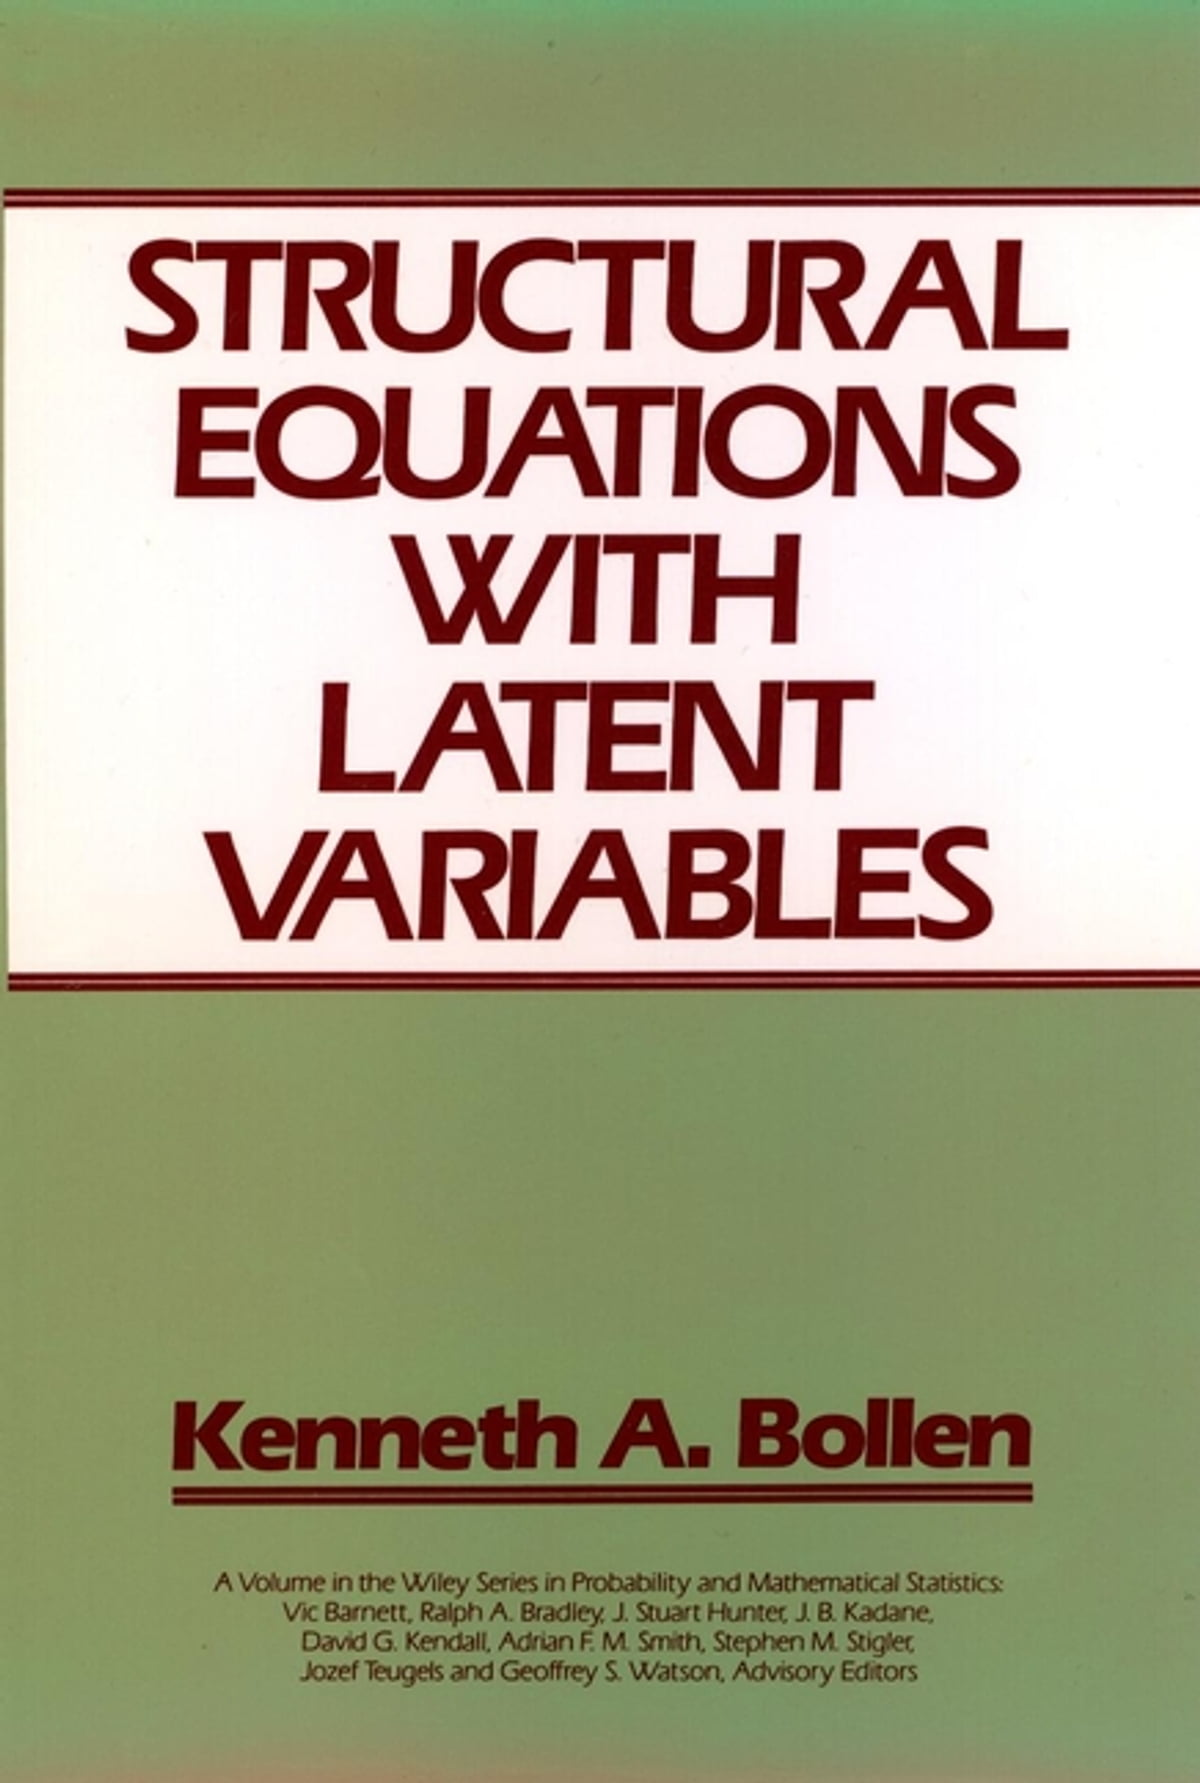 Structural Equations with Latent Variables eBook by Kenneth A. Bollen -  9781118619032 | Rakuten Kobo